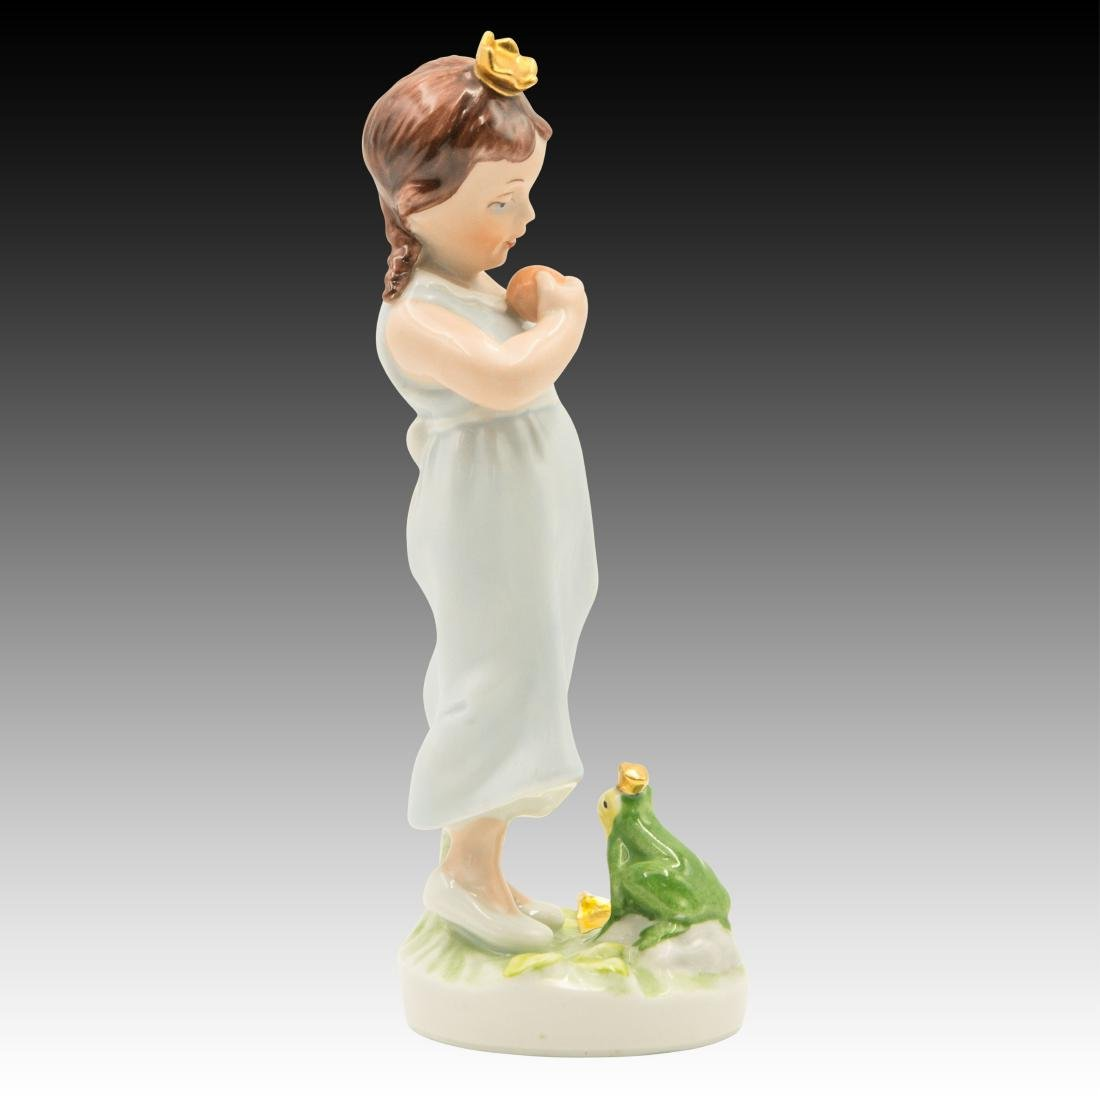 Royal Dux Princess and the Frog Figurine - 4